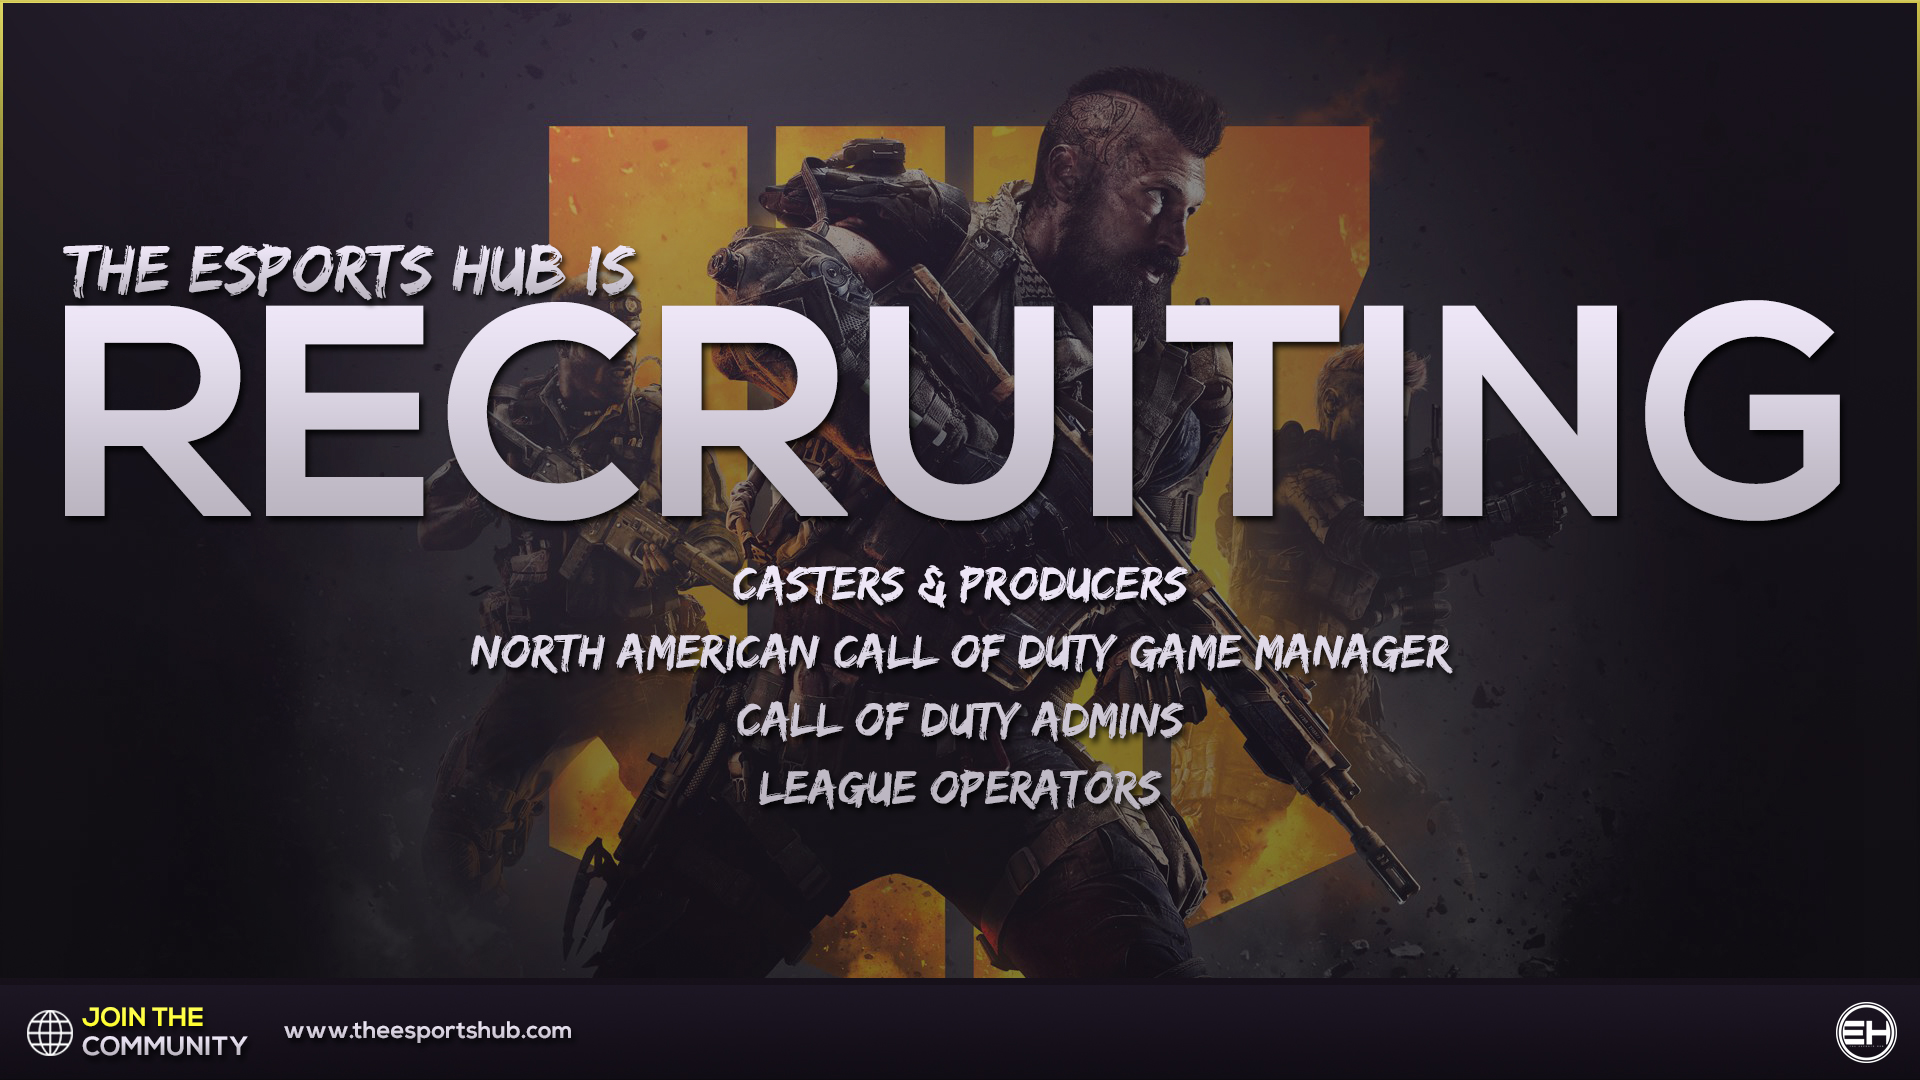 Welcome to The Esports Hub - Home of Competitive Gaming | #ESHUB